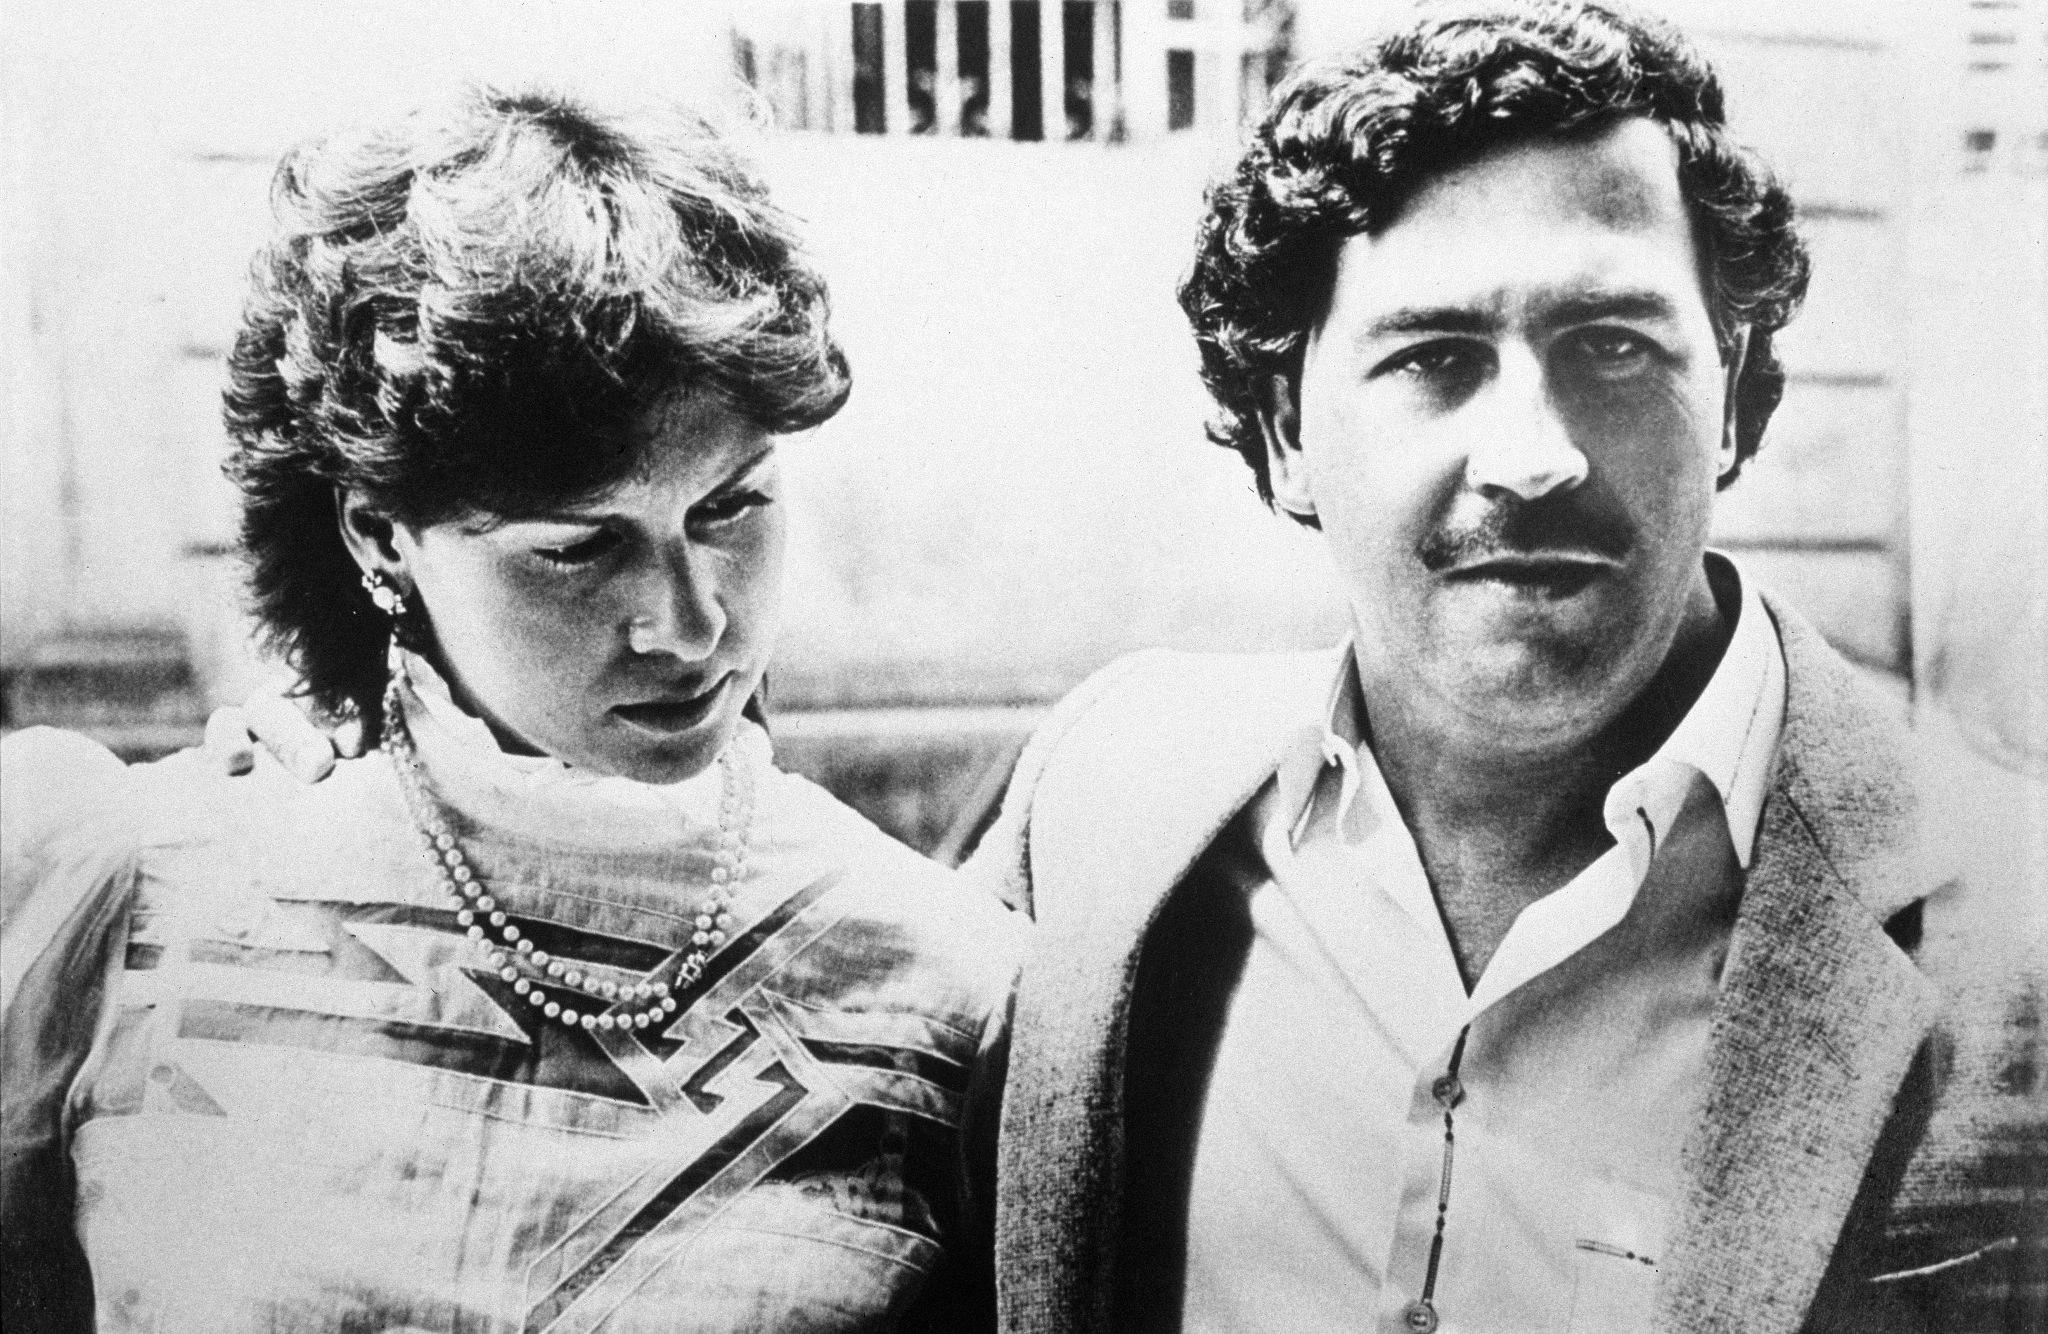 Pablo Escobar and his wife, Maria pose for a photo in 1983